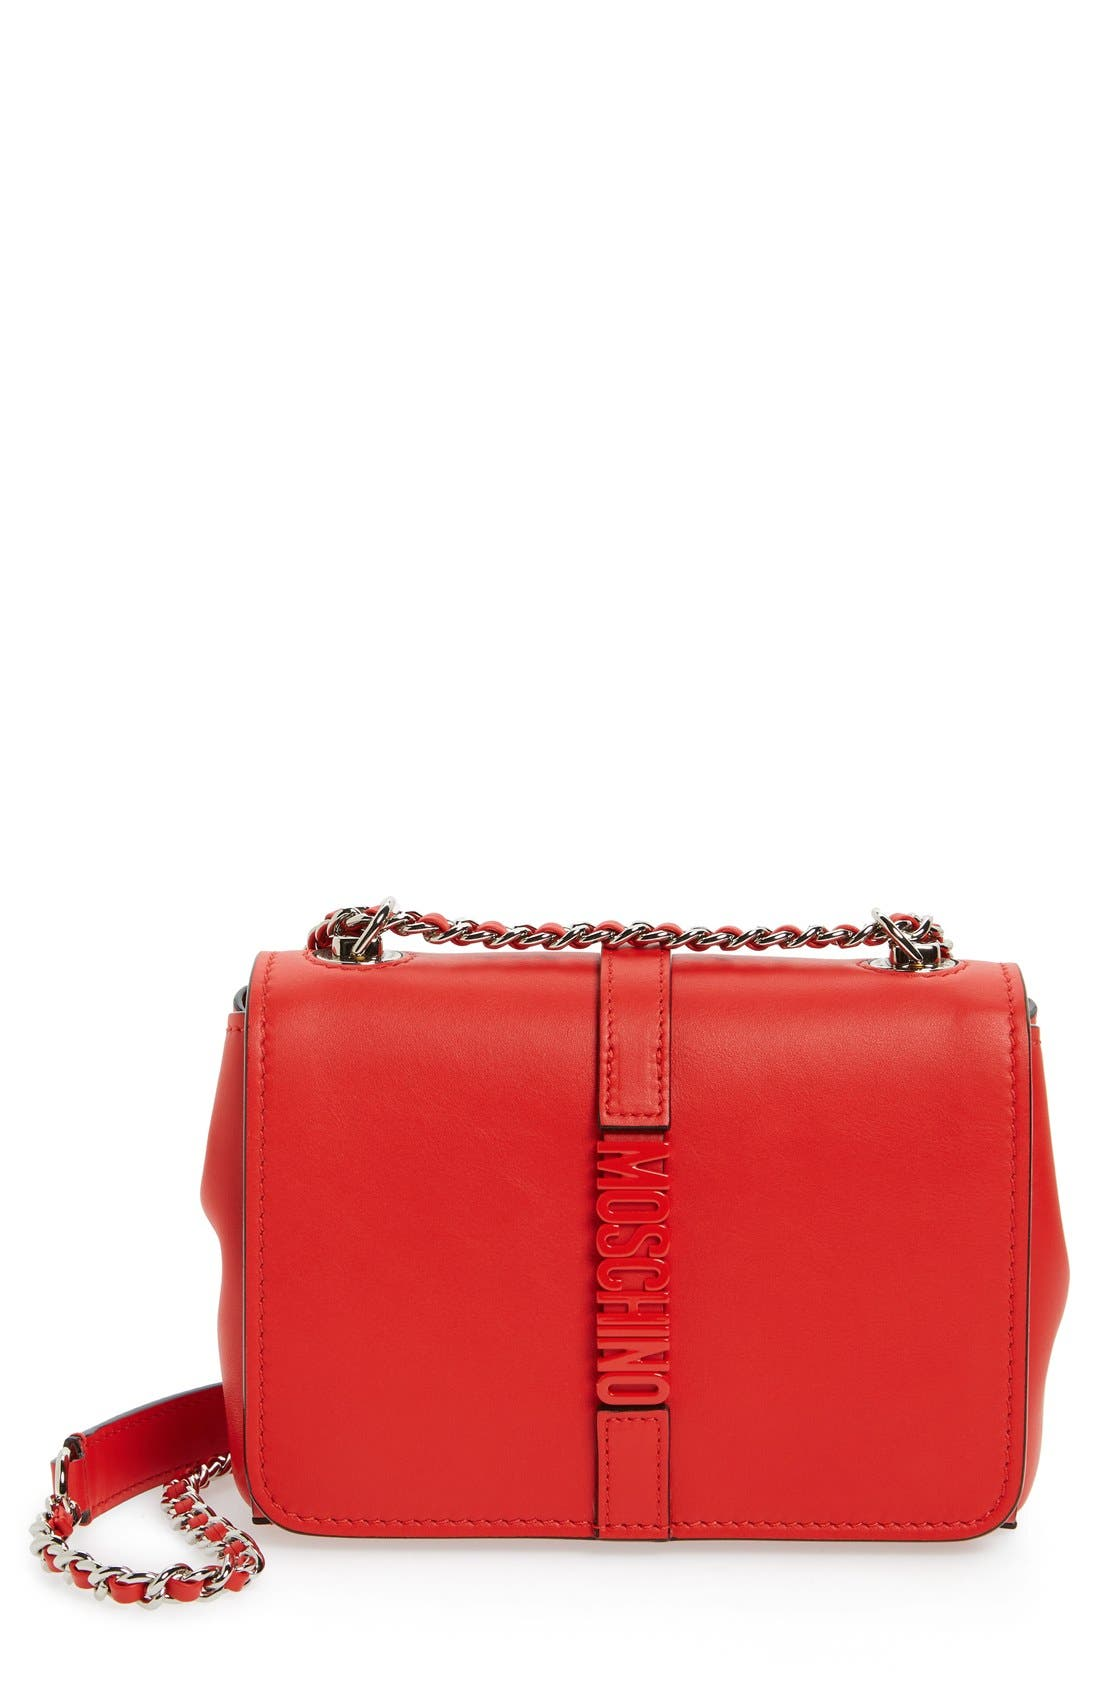 Moschino 'Small Mono Letters' Shoulder/Crossbody Bag